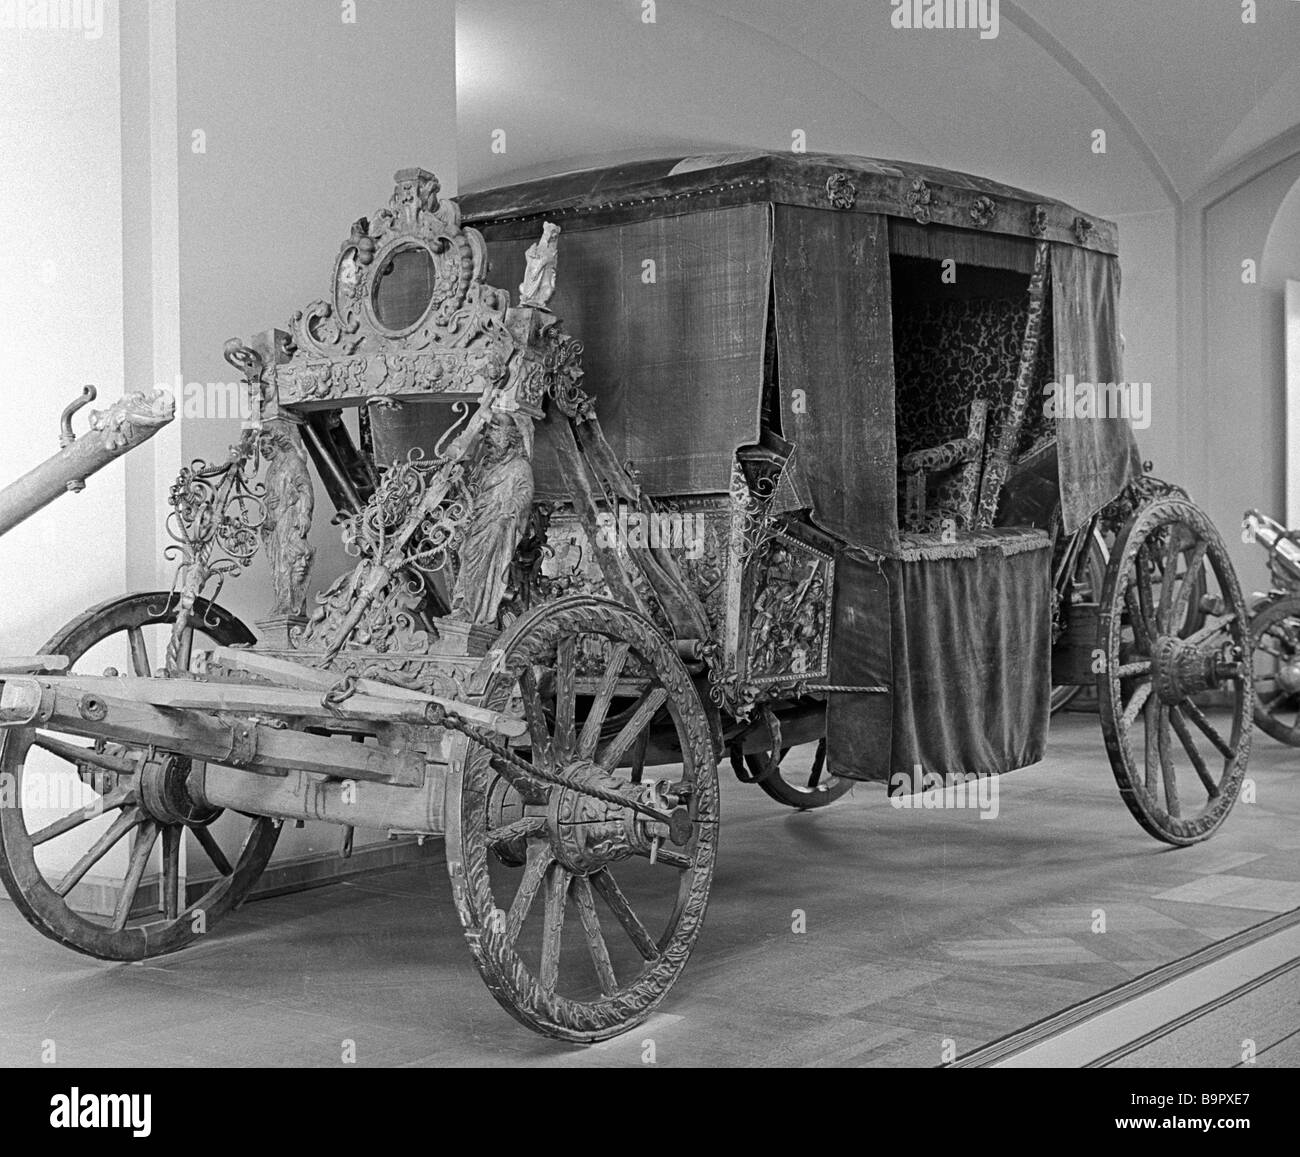 A coach made in England The present for Russian Tsar Boris Godunov from Britain s Queen Elizabeth End of the 16th - Stock Image